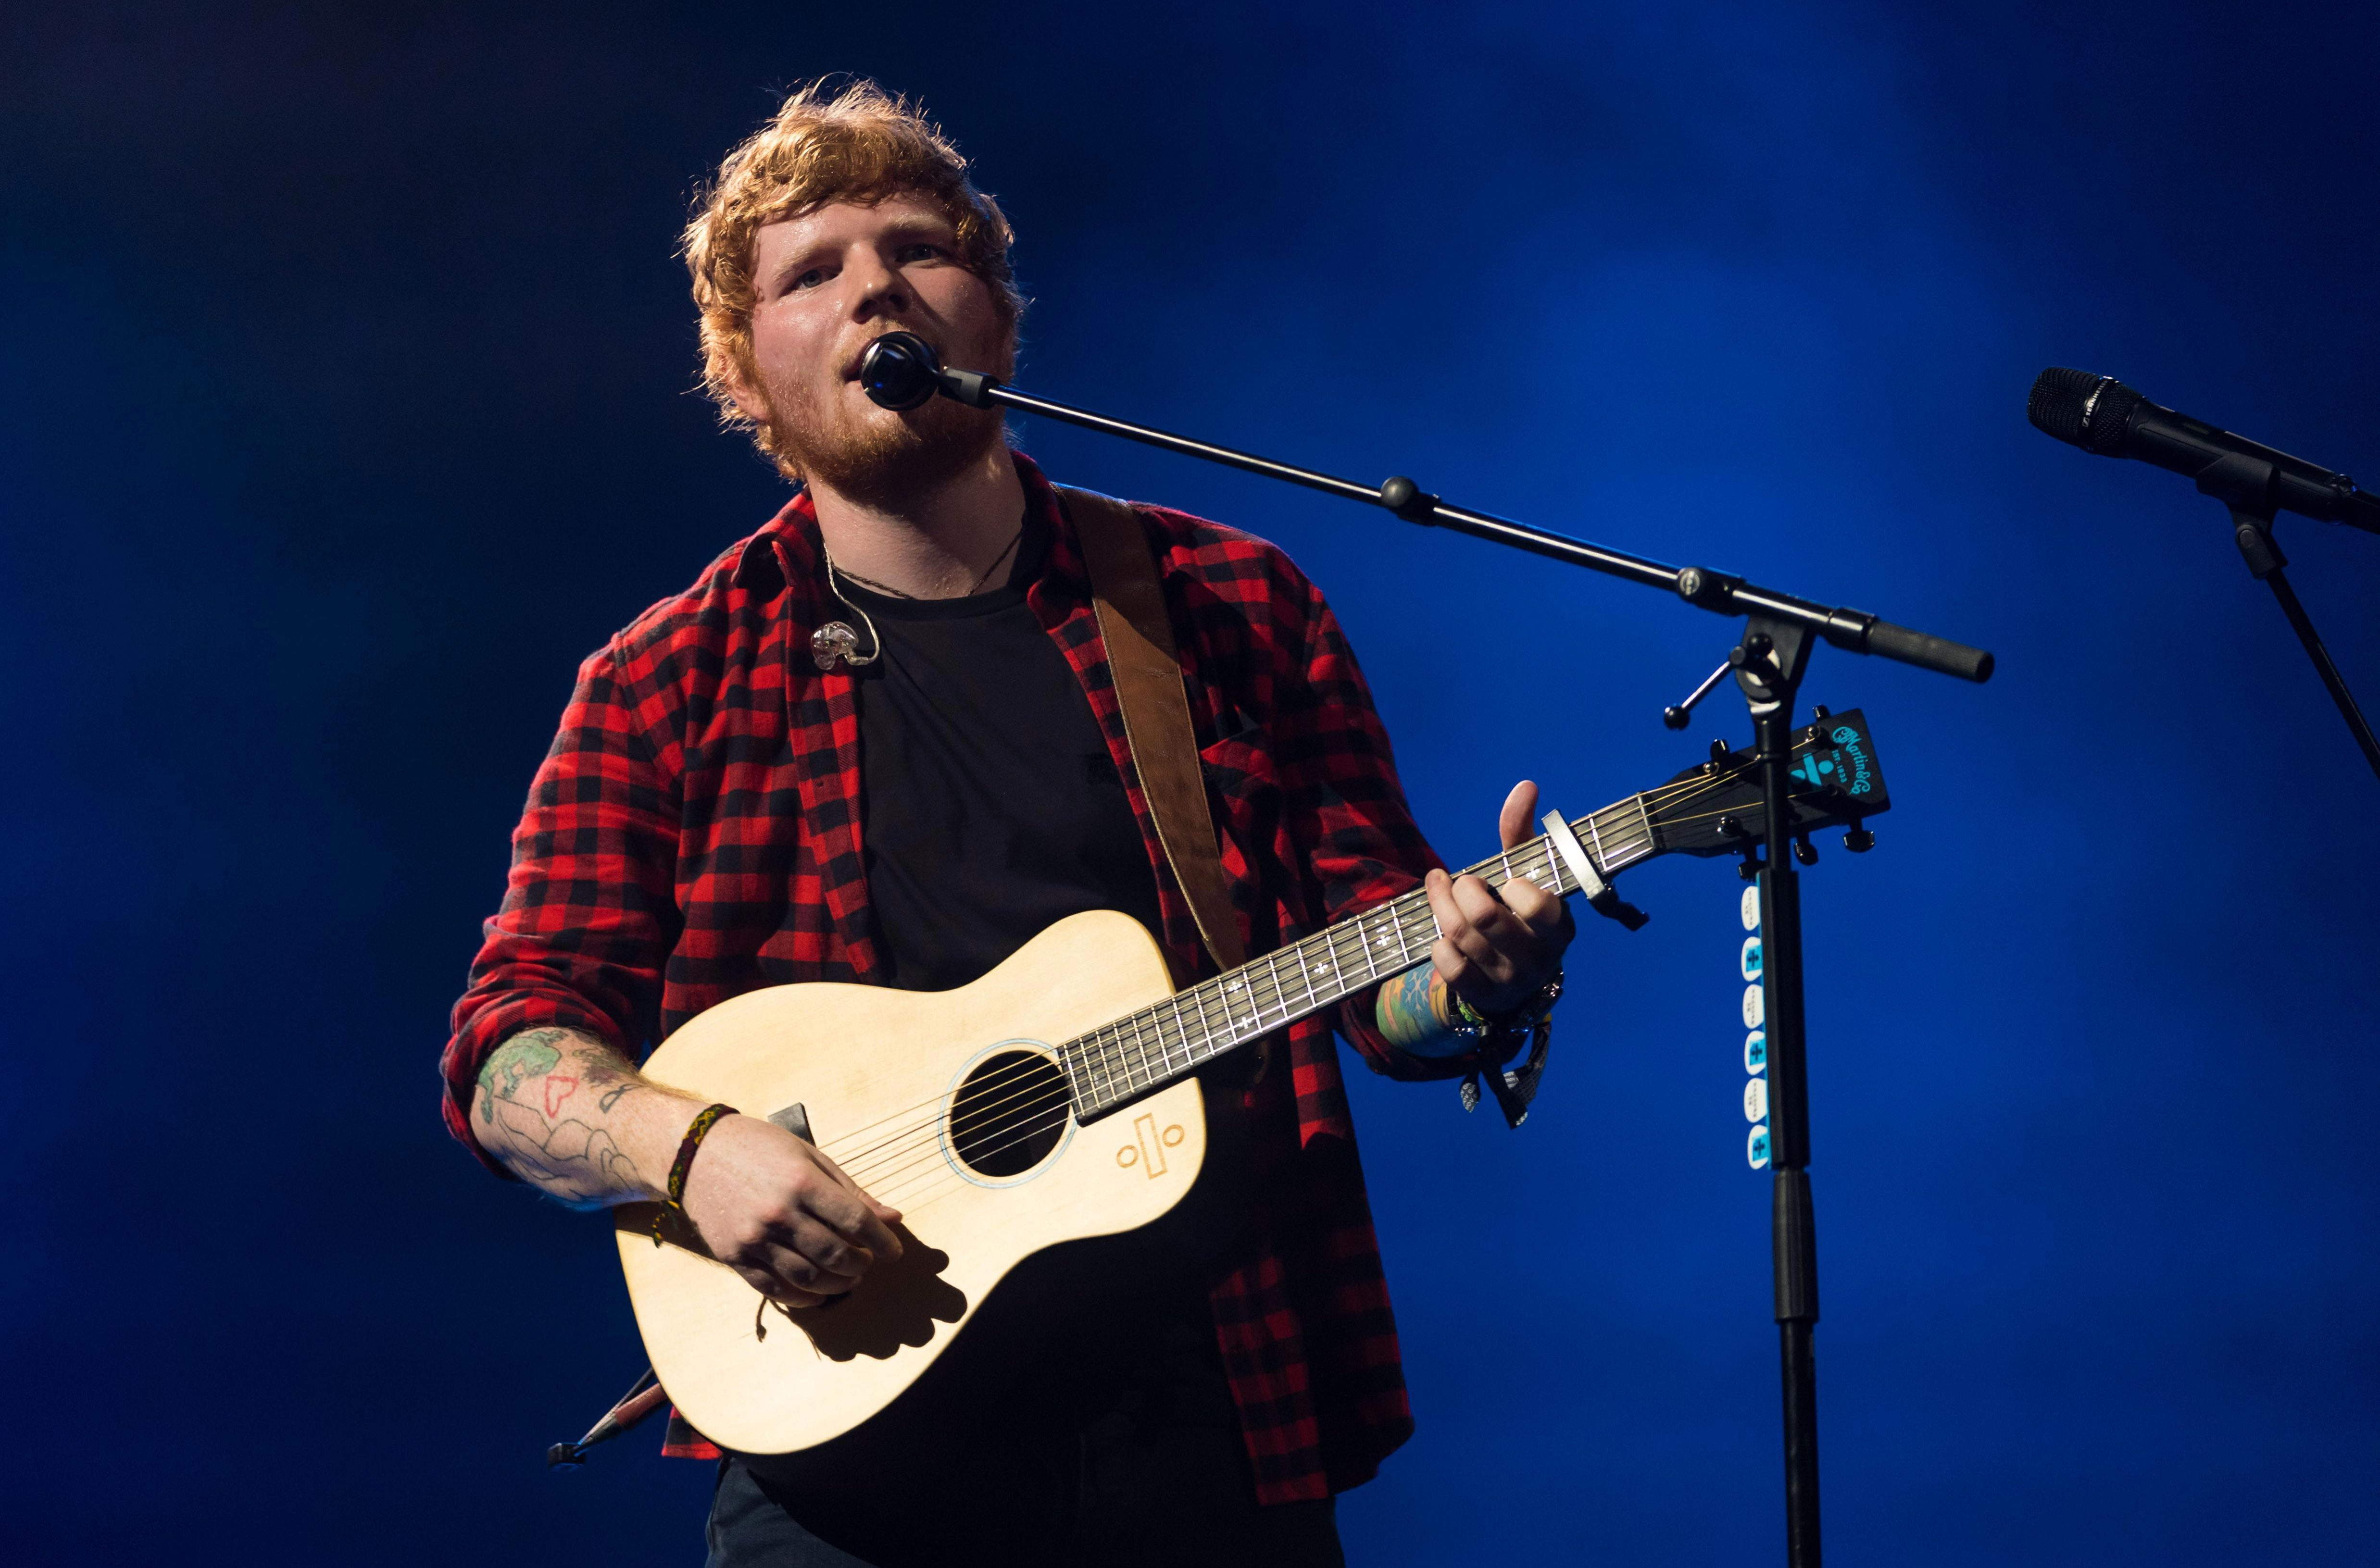 Ed Sheeran has scheduled 23 European and UK tour dates